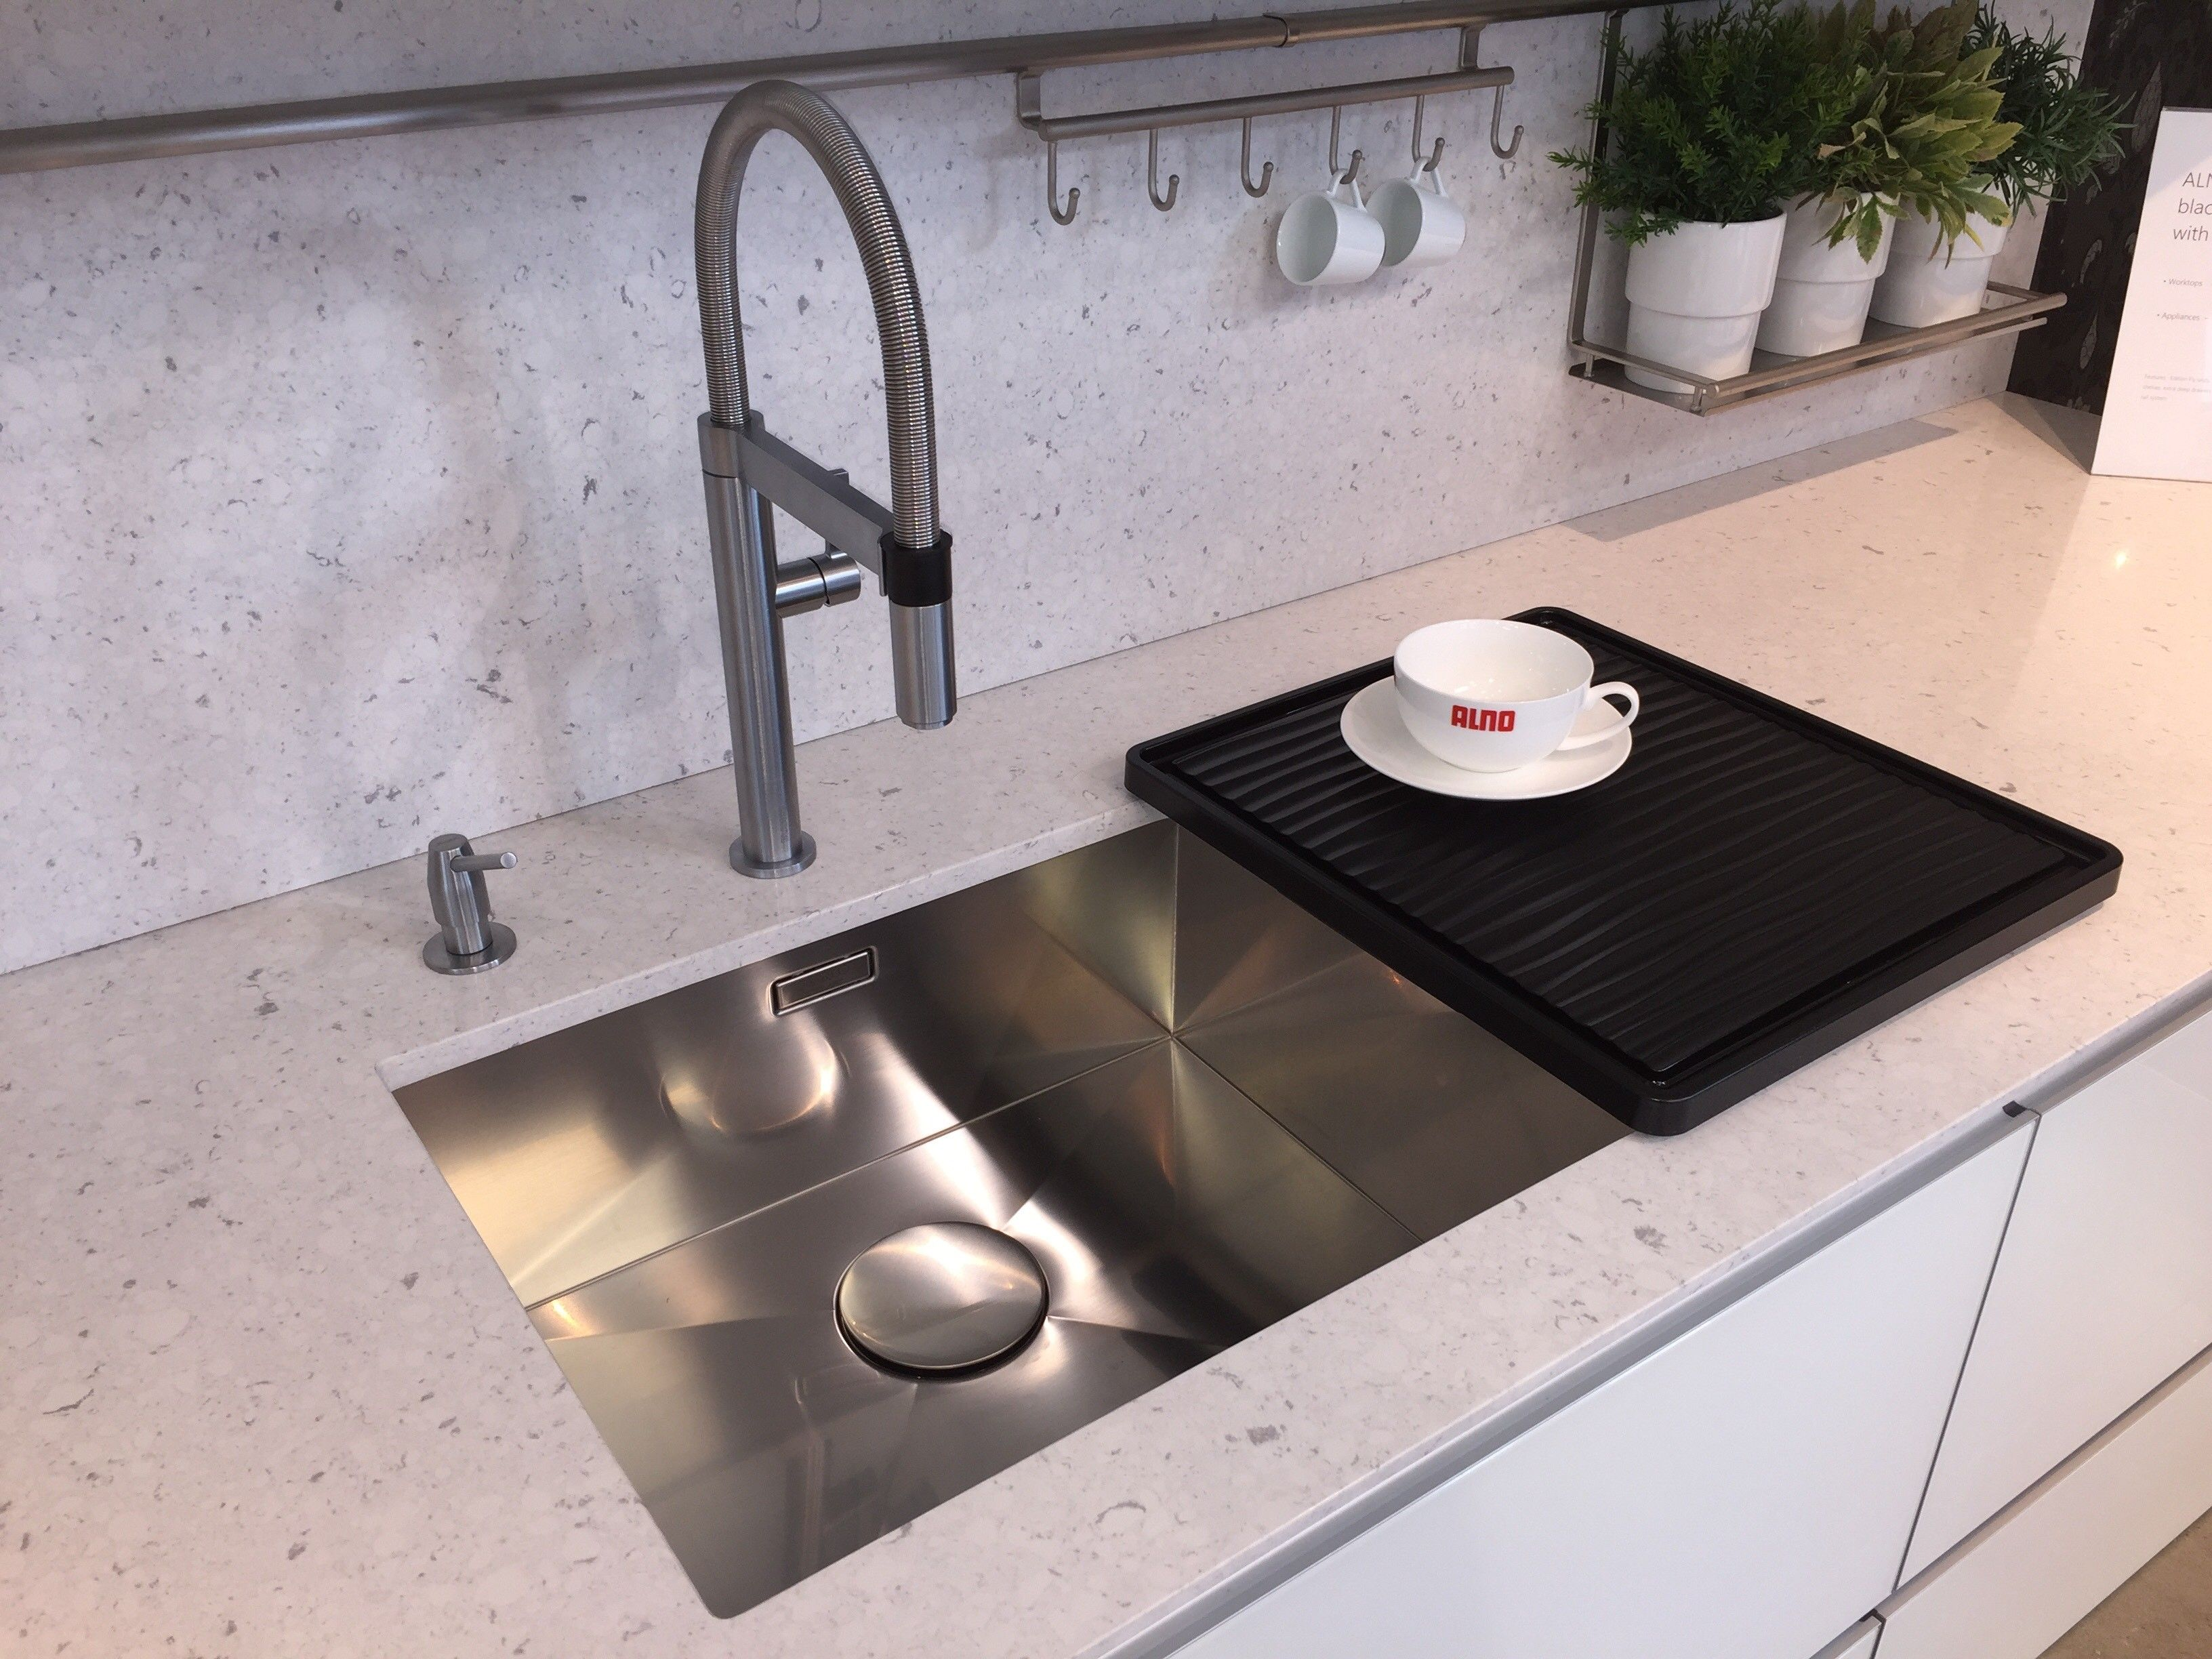 ALNO Kitchen Including A Blanco Culina S Mini Tap In Brushed Steel Finish  With Matching Soap Dispenser And Blanco Zeroz Sink With Wave Removable  Drainer